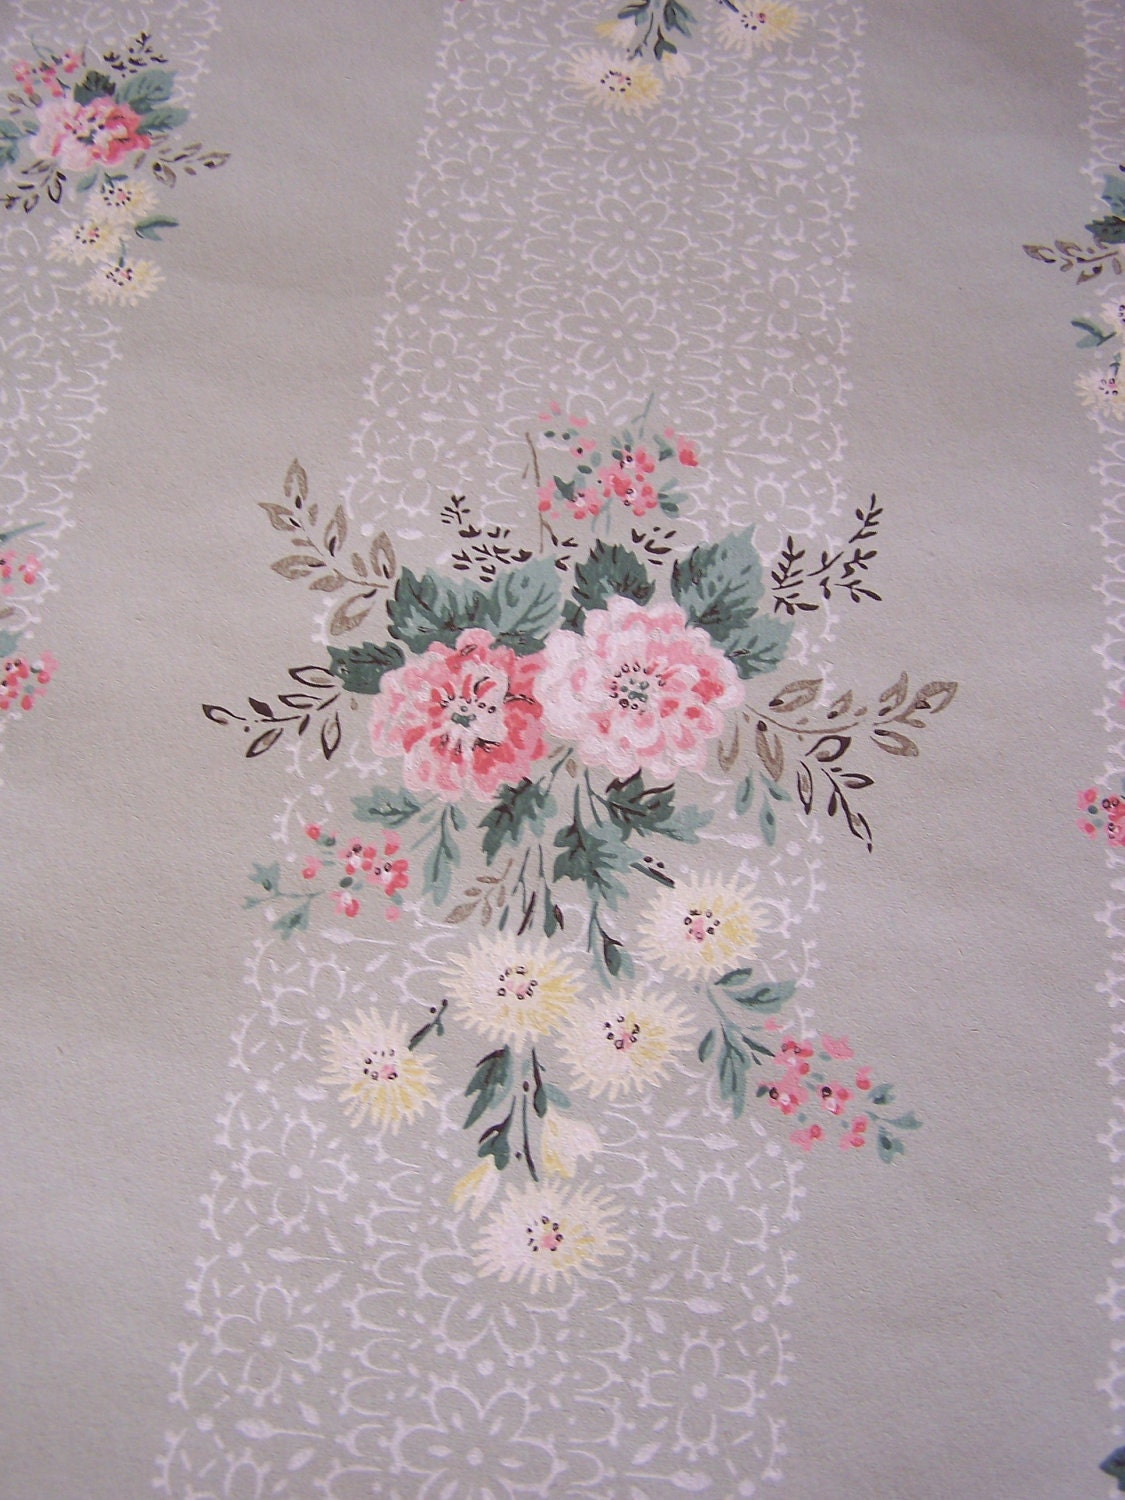 Vintage Wallpaper Spring Sage Green Pink Yellow Daisies Floral Bouquet Focal Lace Strips Shabby Cottage